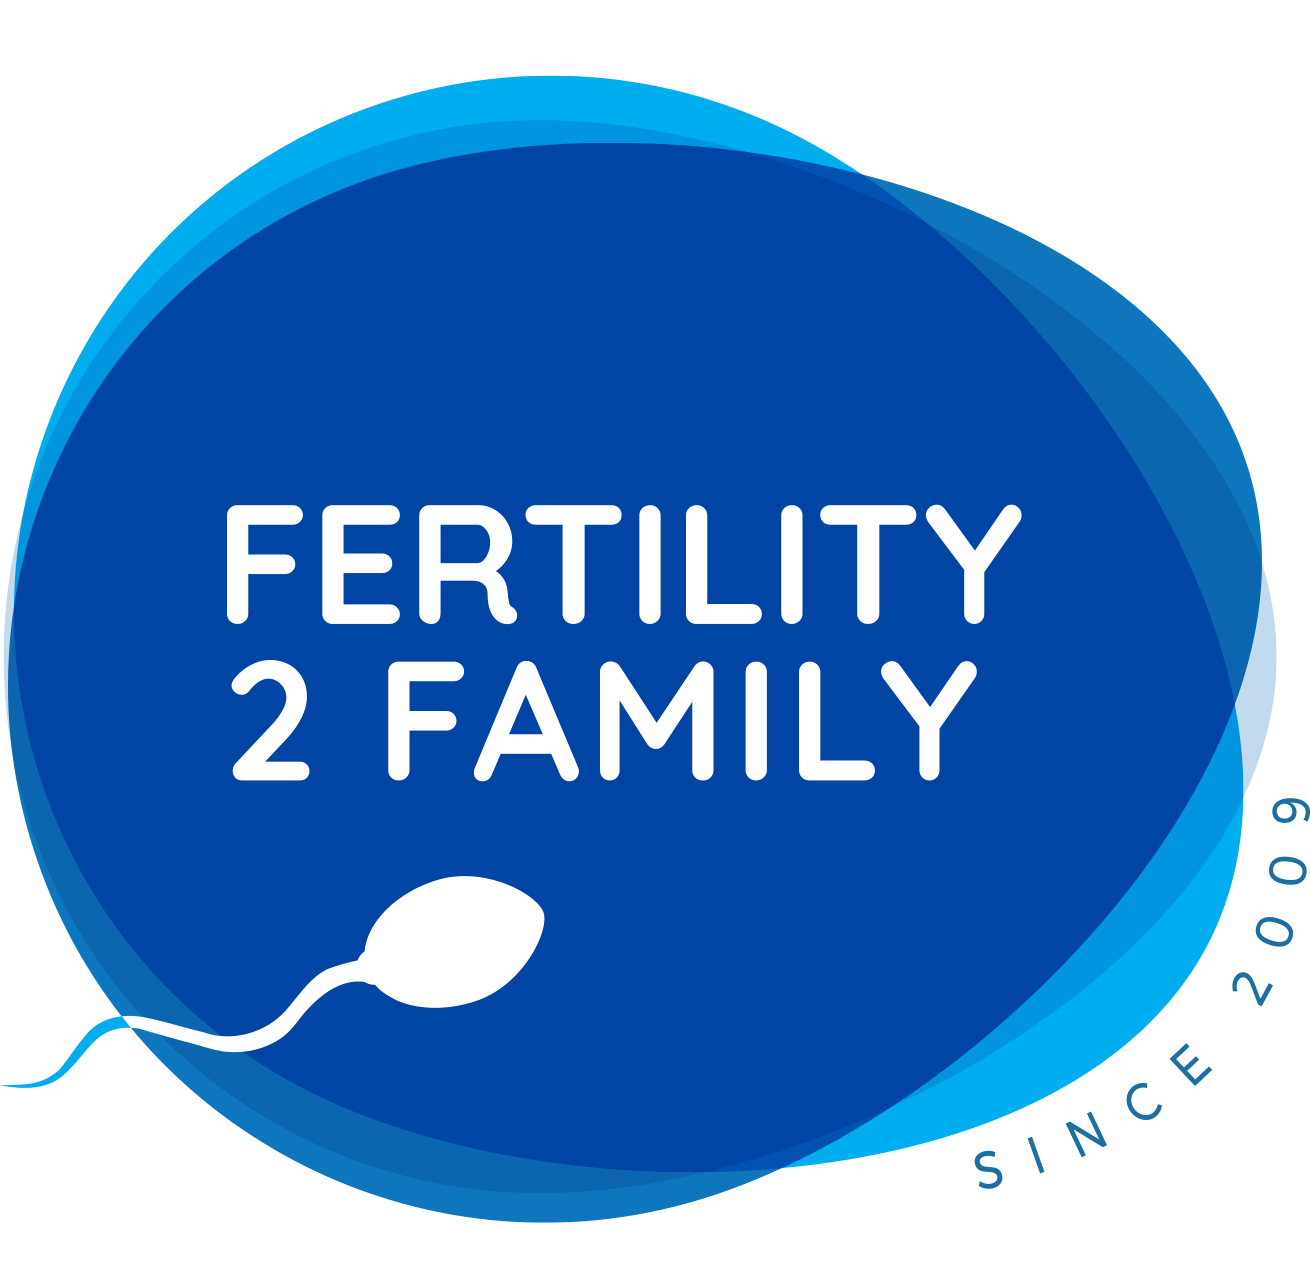 fertility2family logo